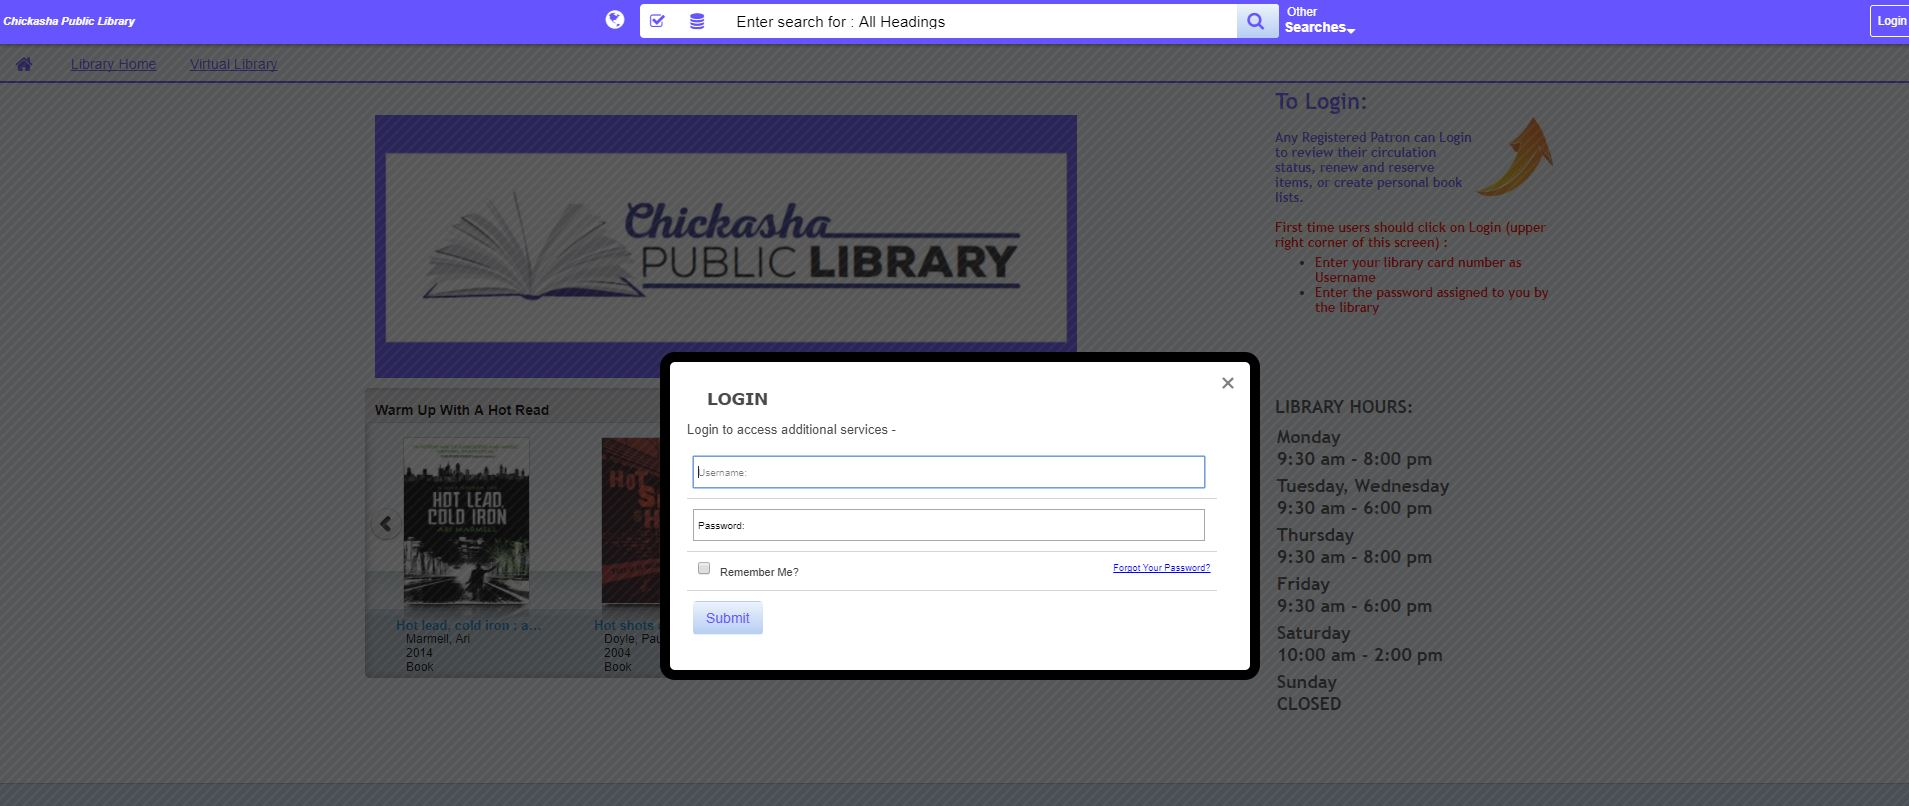 Patron login location for catalog